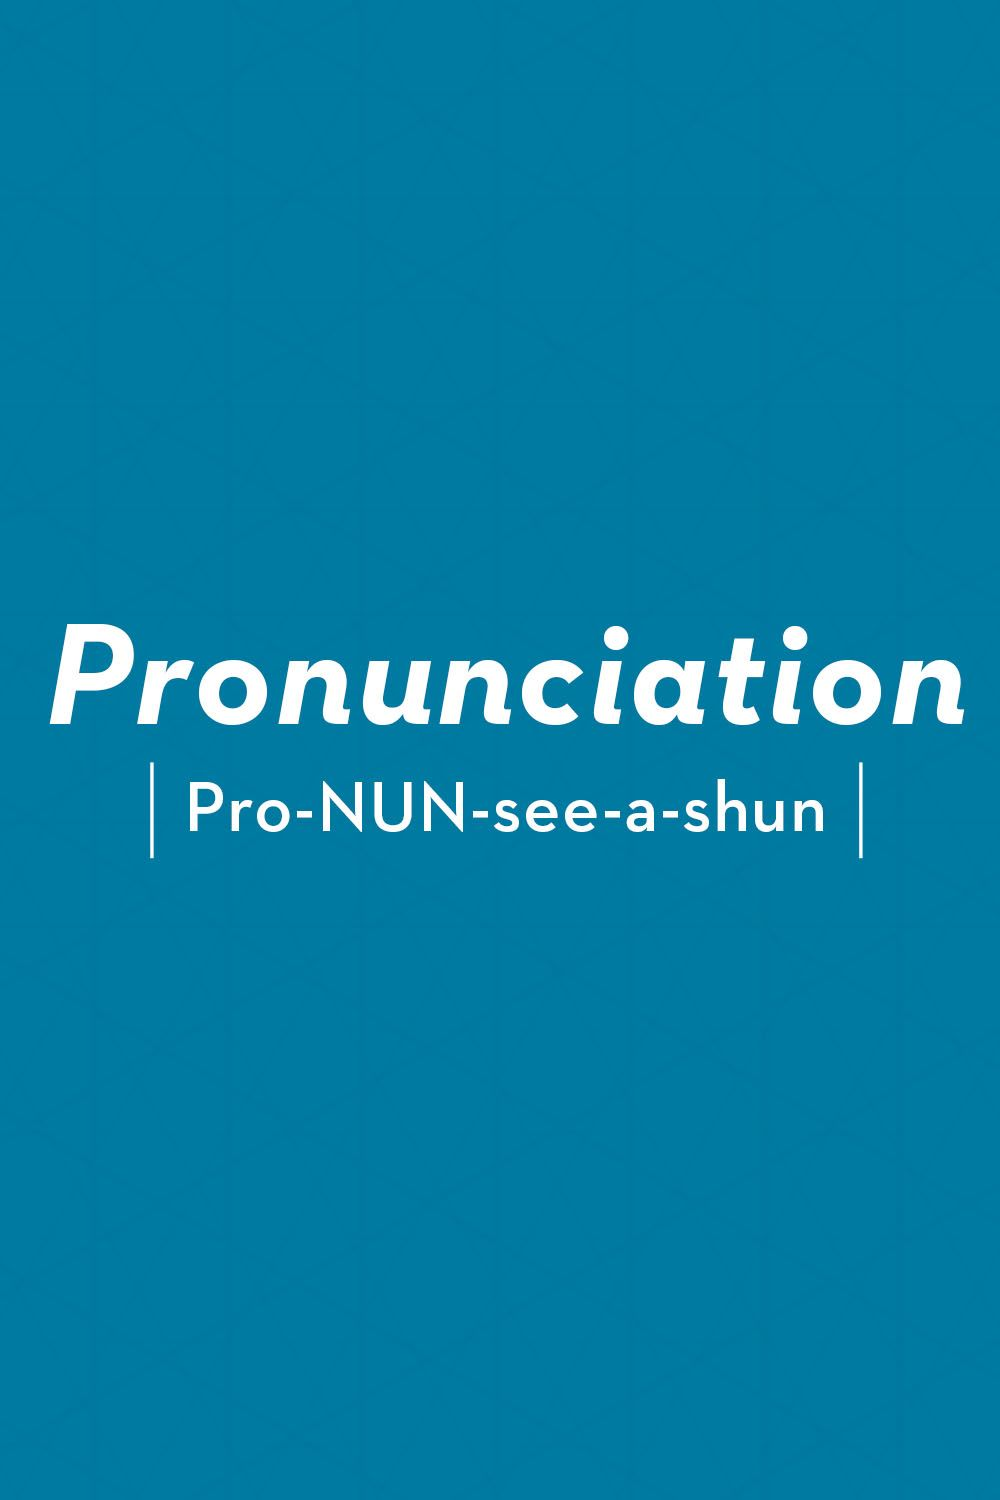 30 Words You're Pronouncing Wrong - List Of Words